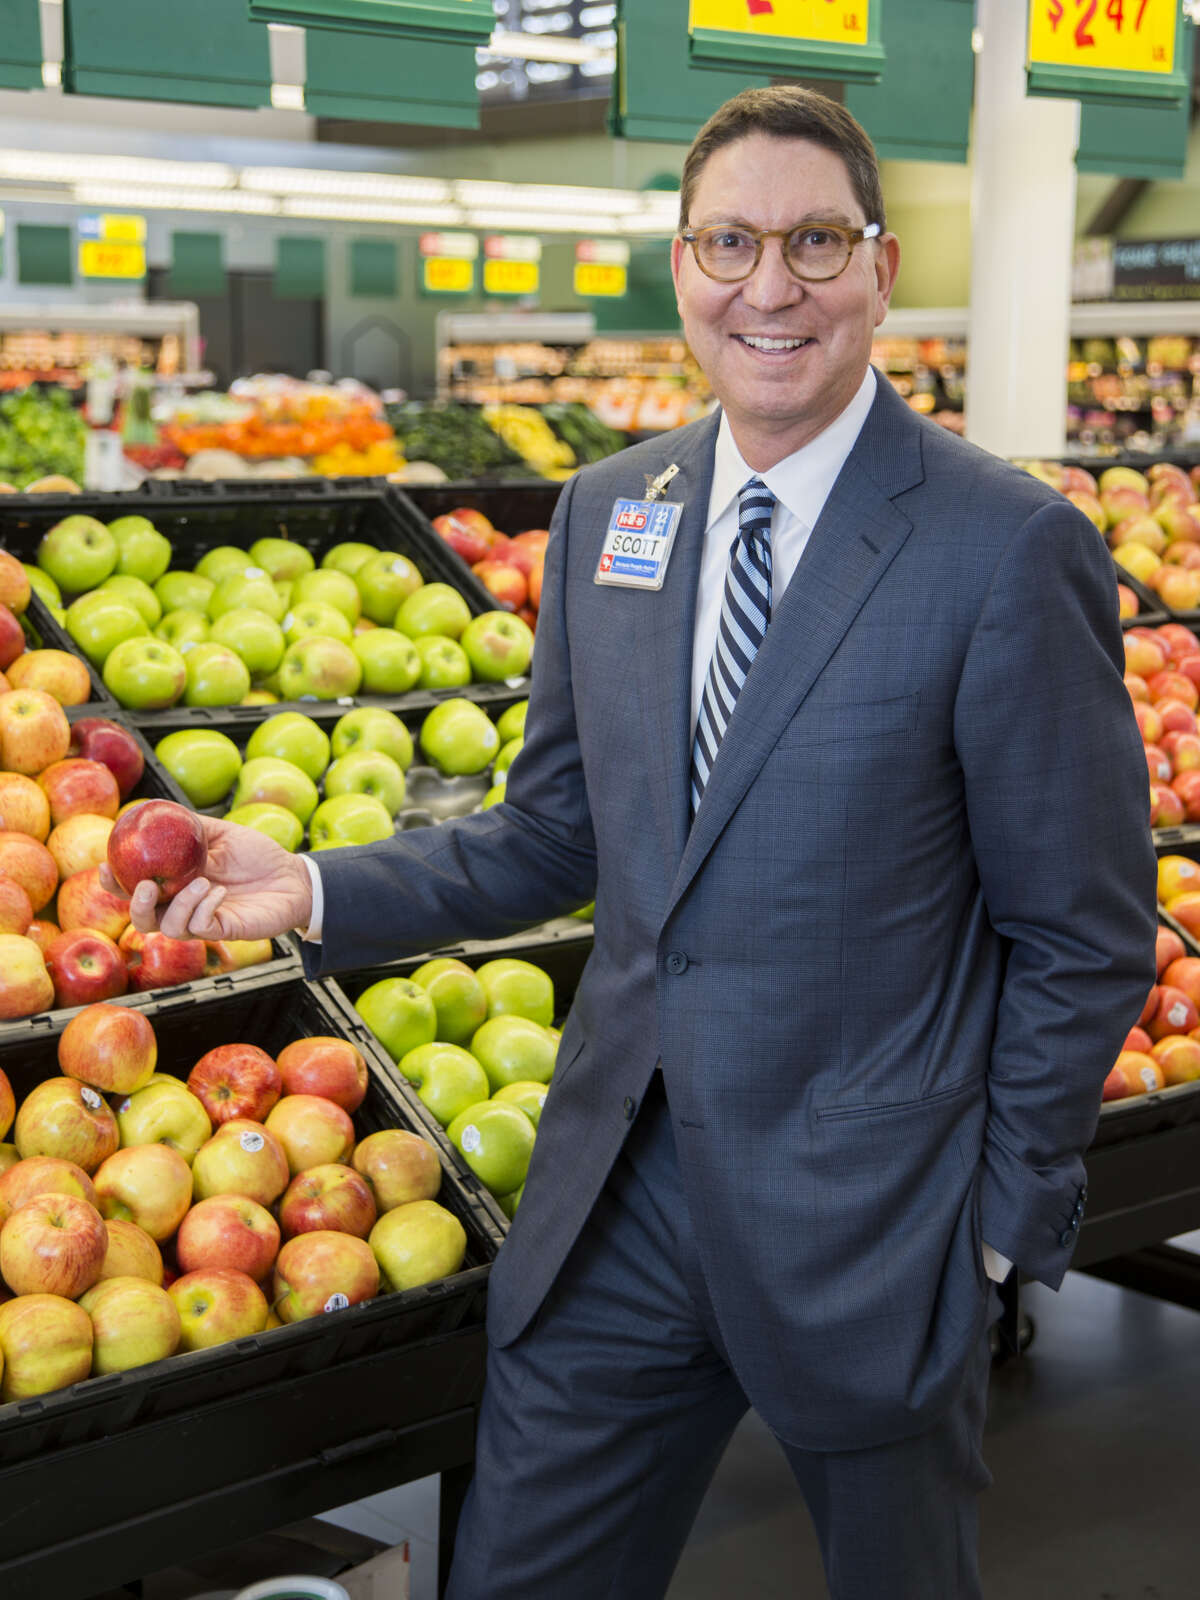 """Scott McClellandPresident, H-E-BFood/Drug Stores -Alarm settings on weekdays:I get up at 4:45 a.m. every weekday morning to go to the gym. The key to waking up early is to get your feet on the floor and say to yourself, """"Today's going to be a great day!""""- What's the first app you check in the morning and the last before bedtime?I check my email, and then I look at Twitter. - Favorite Instagram feed: N/A-Funniest recent text message: I sent a friend a text about a woman asking to take a photo with me because her son studied about me in history at school. I told my friend that the woman have mistaken me for Abraham Lincoln."""